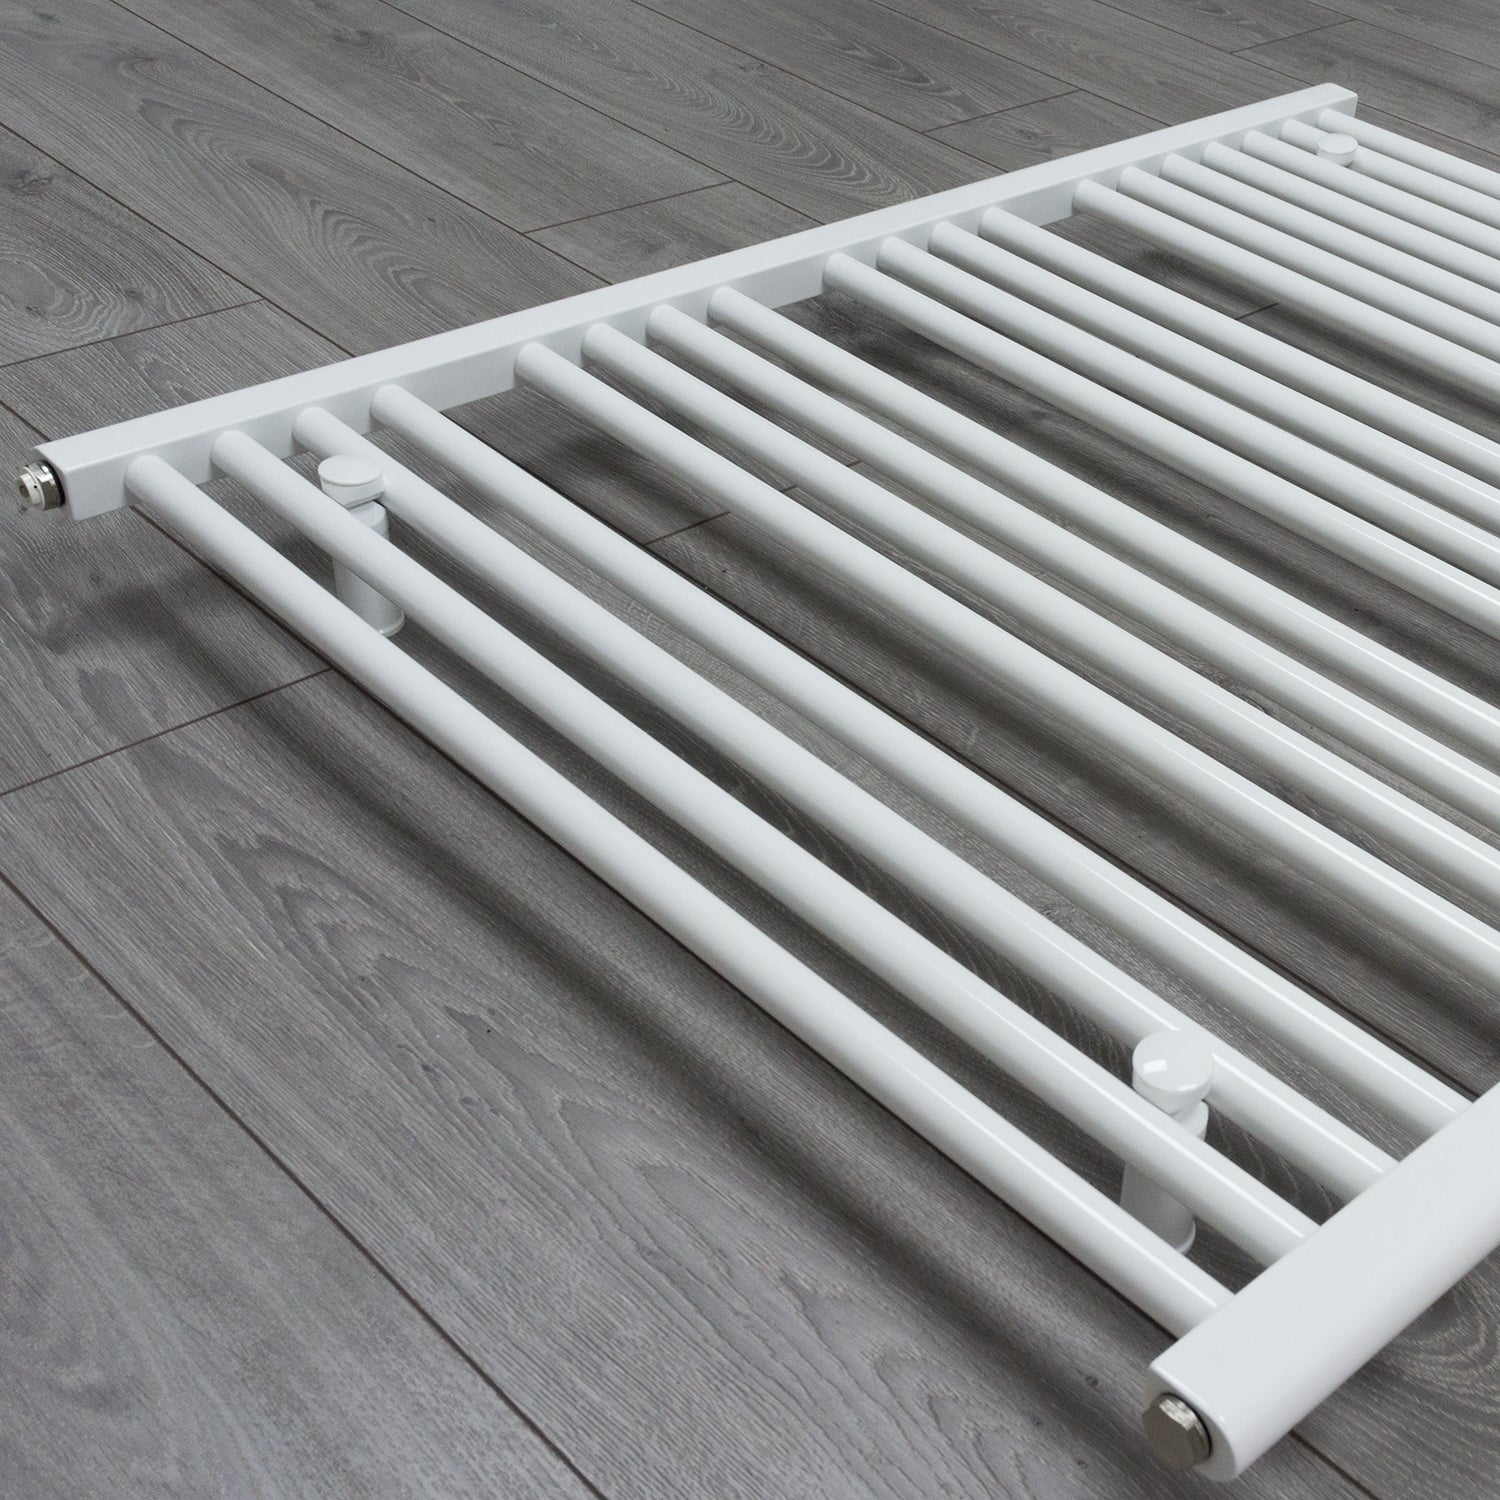 900mm x 400mm White Heated Towel Rail Radiator Close Up Image